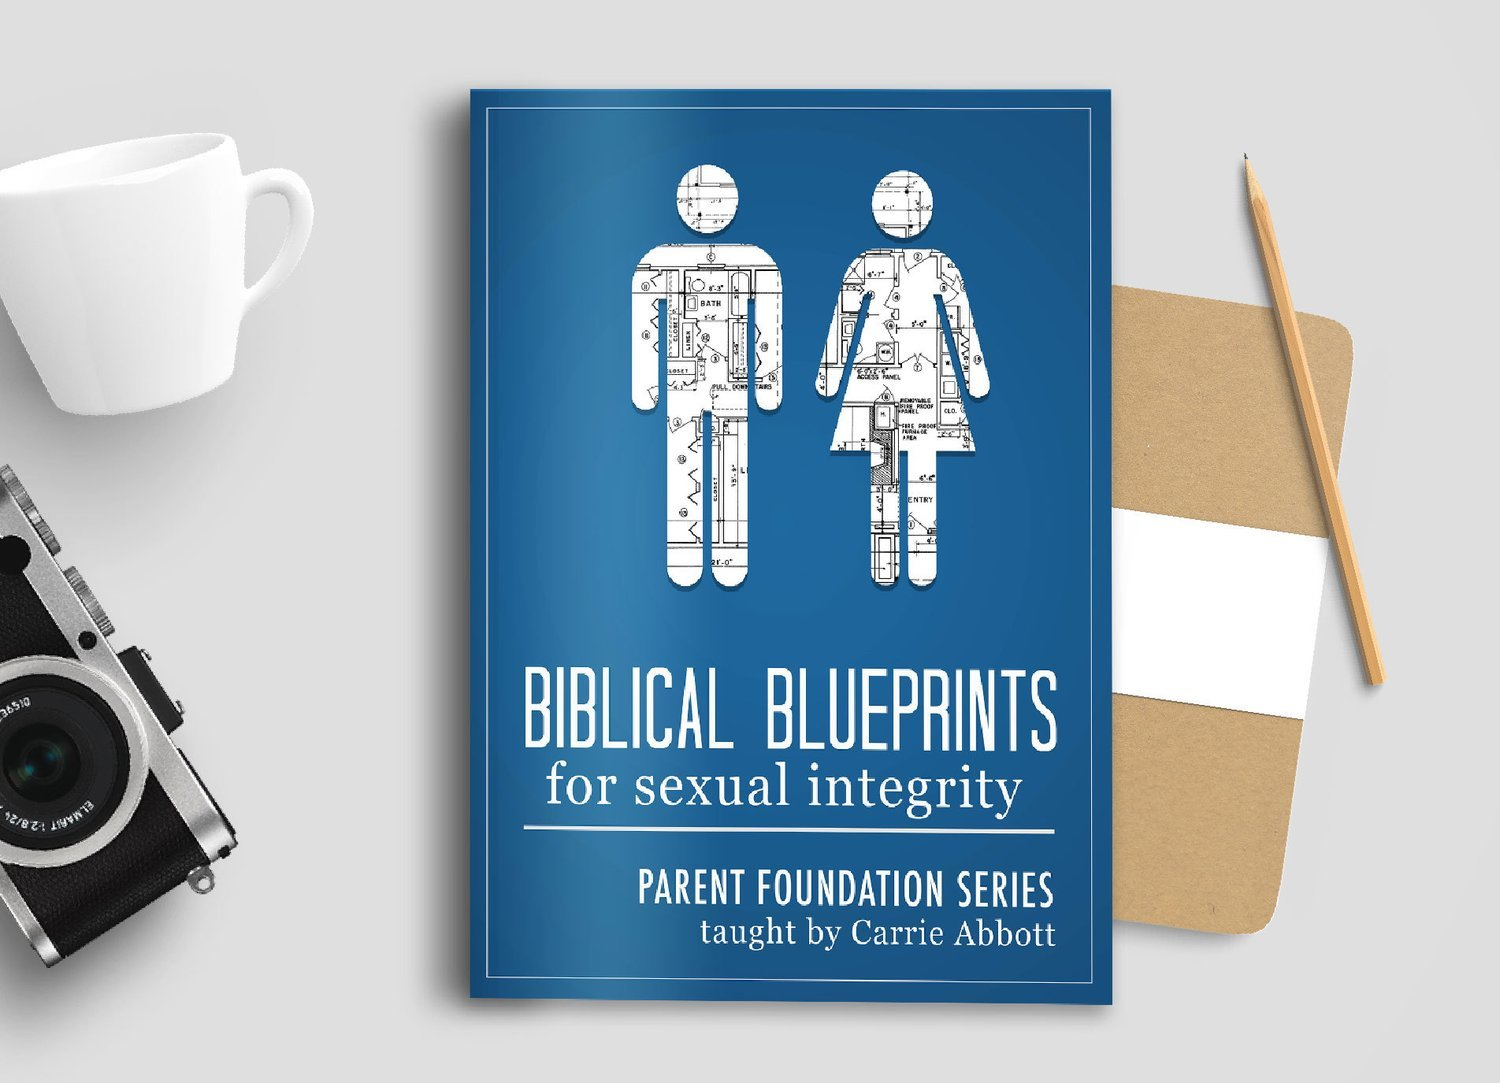 Biblical blueprint for sexual integrity kit the biblical blueprint for sexual integrity kit malvernweather Images